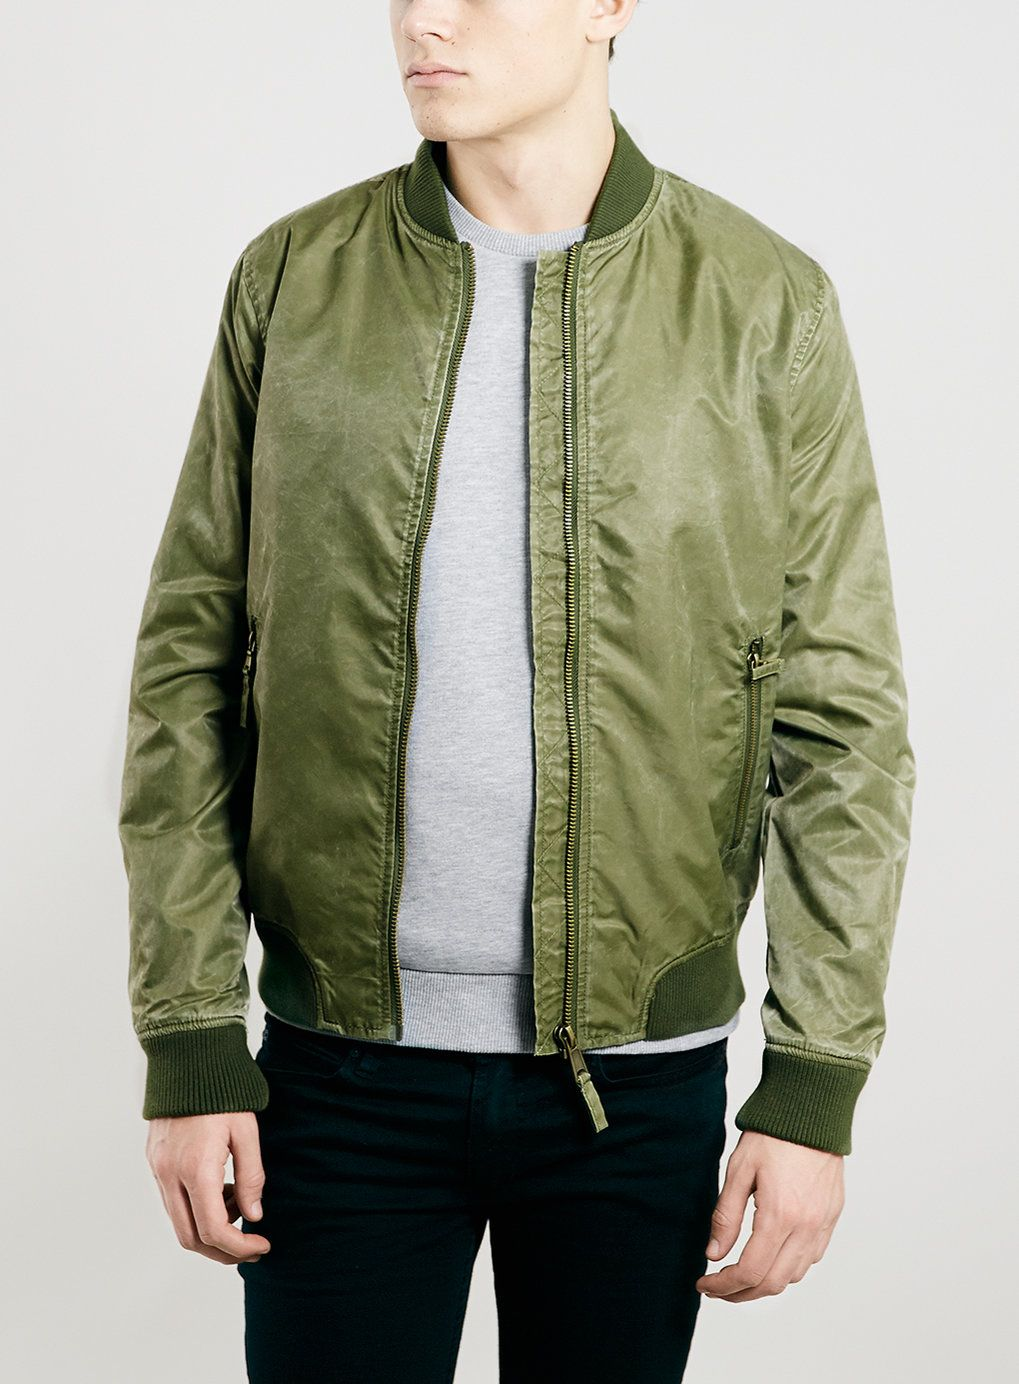 KHAKI BRUSHED BOMBER JACKET - New In- TOPMAN | SPR 2016 - The ...